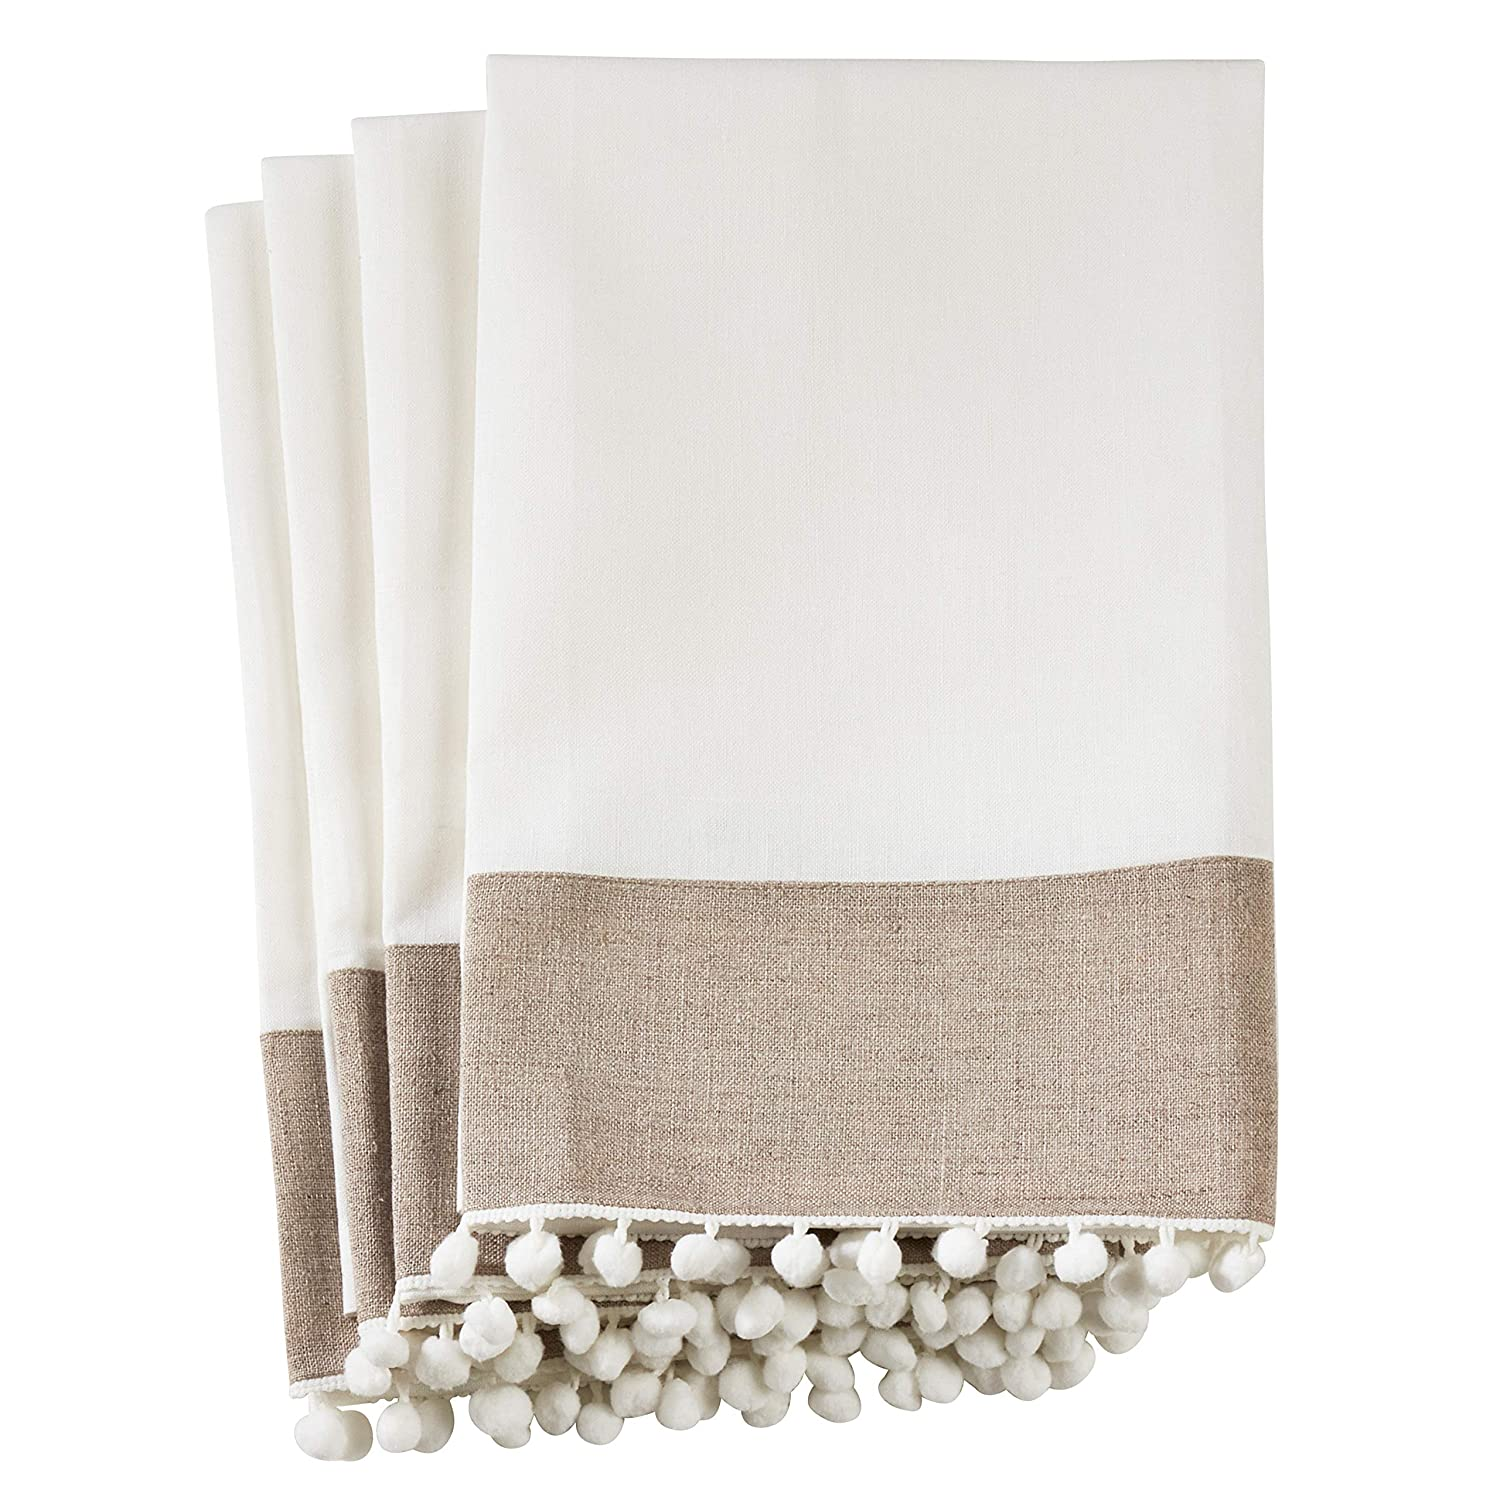 SARO LIFESTYLE 0577 Petite Pompon Square Table Topper 60-Inch Ivory